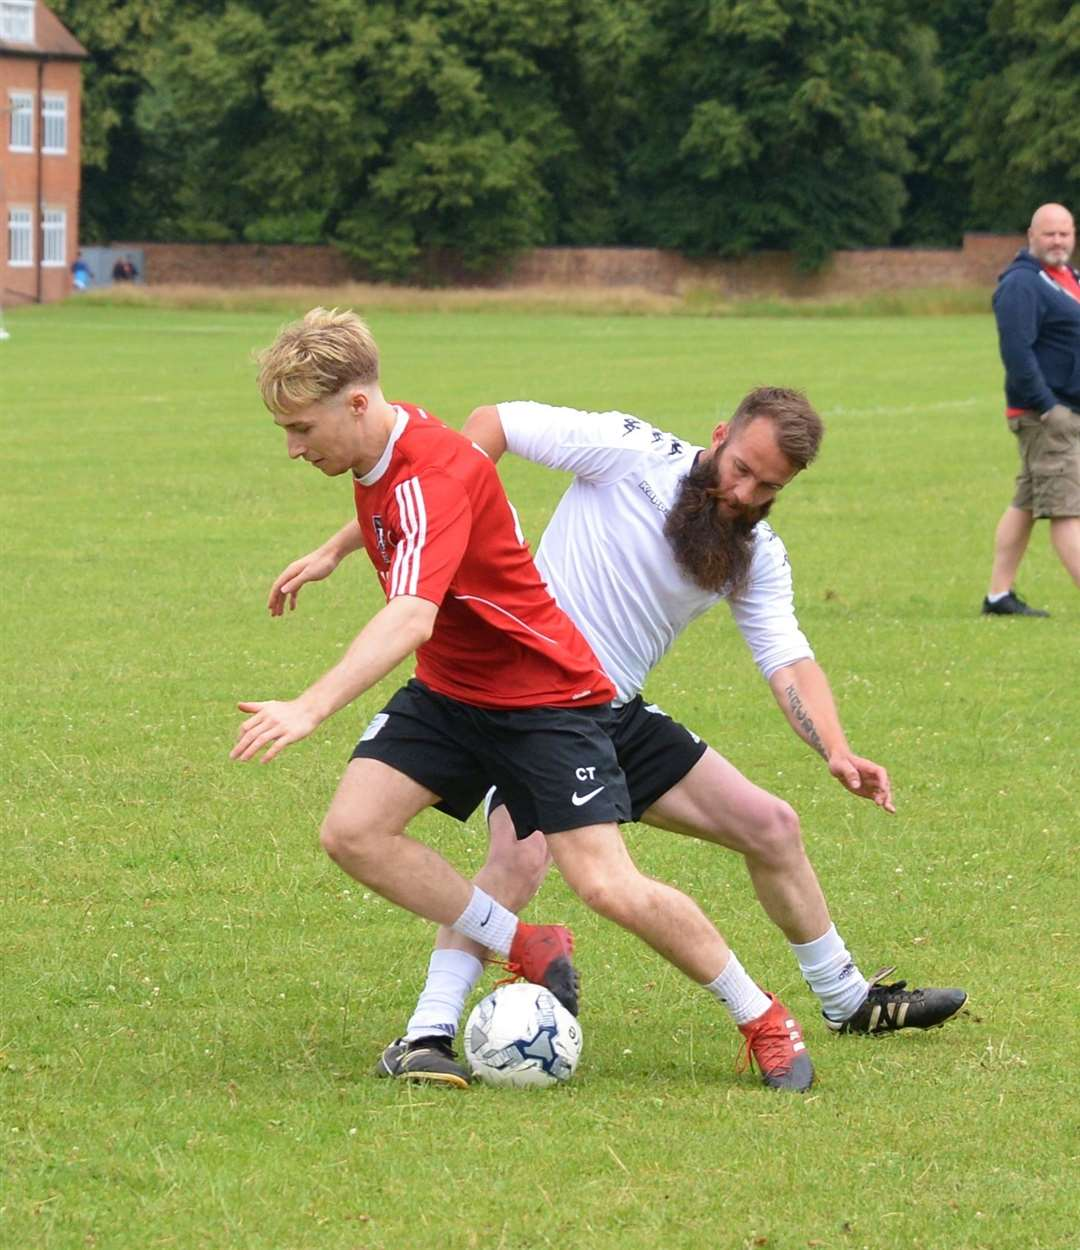 The Advertiser's Connor Thompson in action against Average Joe's. 060719DC1-11 (13519857)